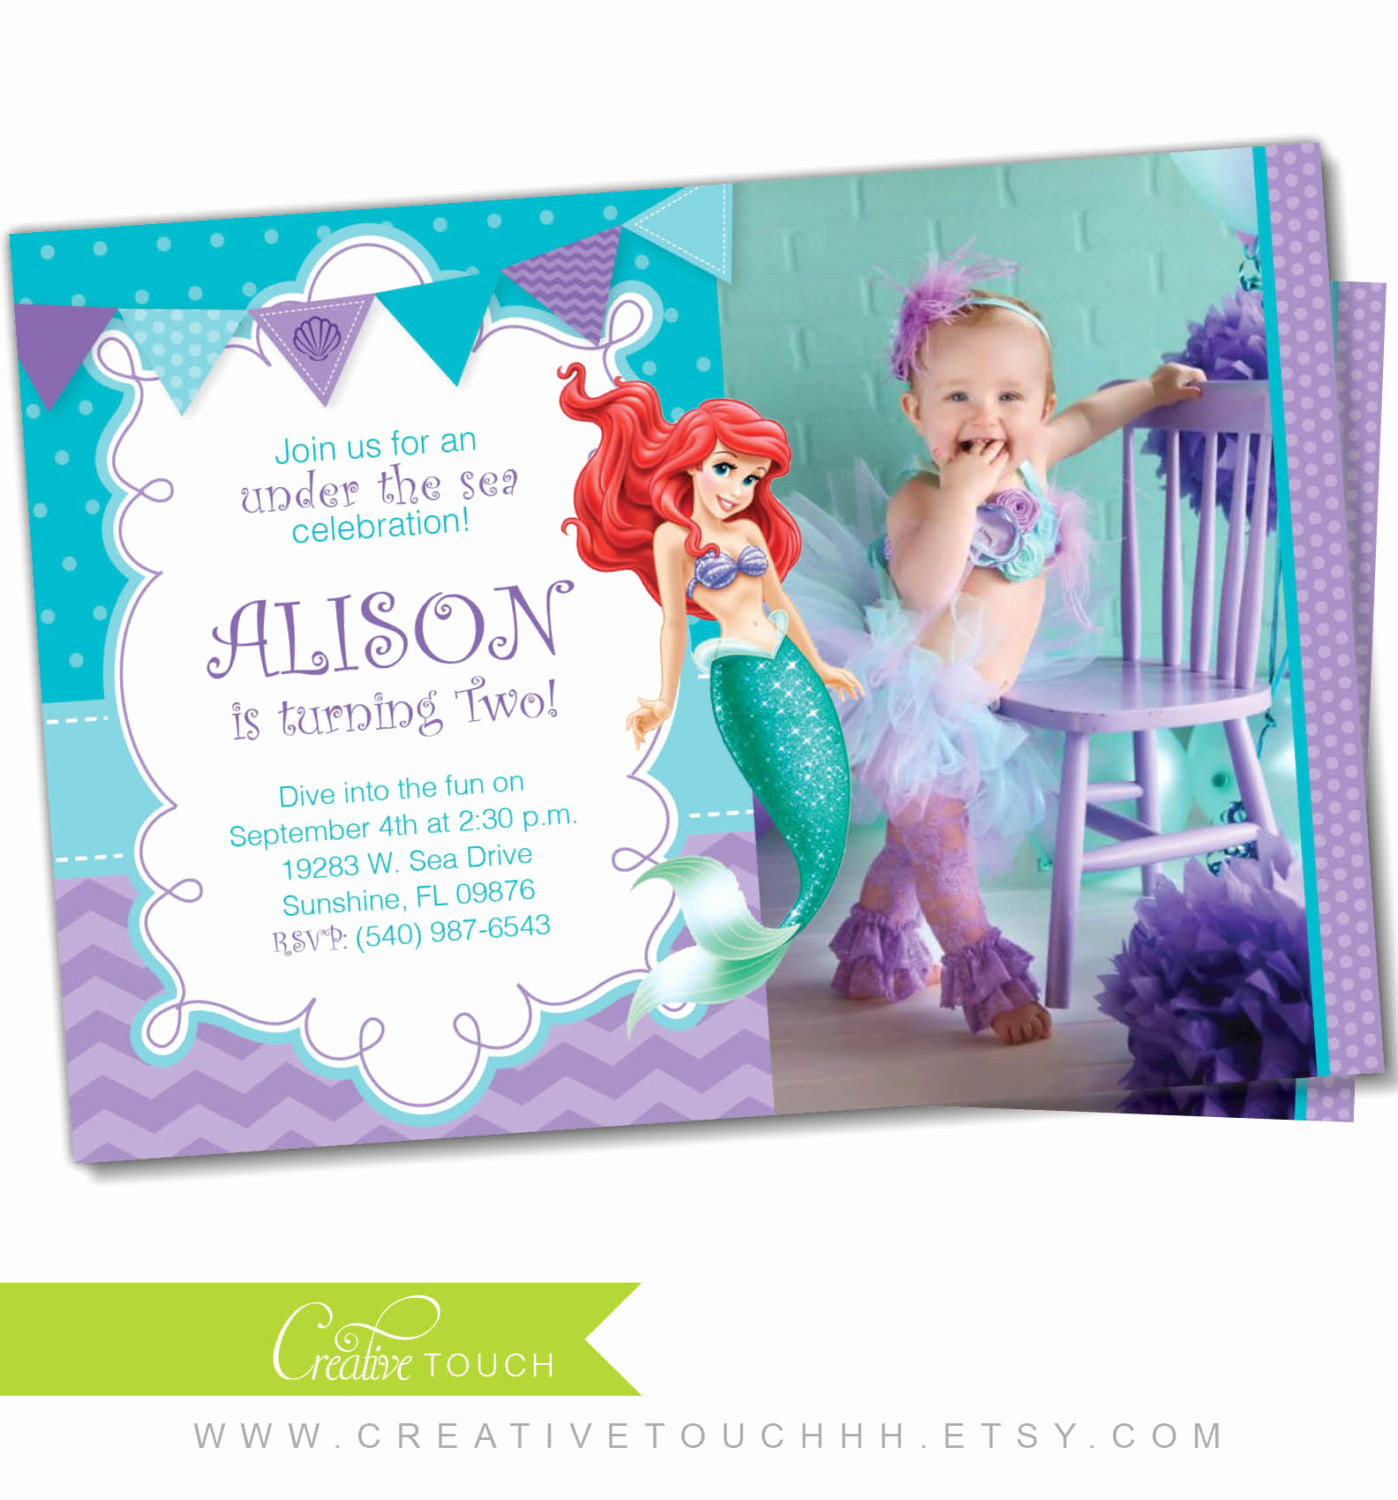 Little Mermaid Birthday Invitation Template Fresh Little Mermaid Invitation Little Mermaid Invite Ariel